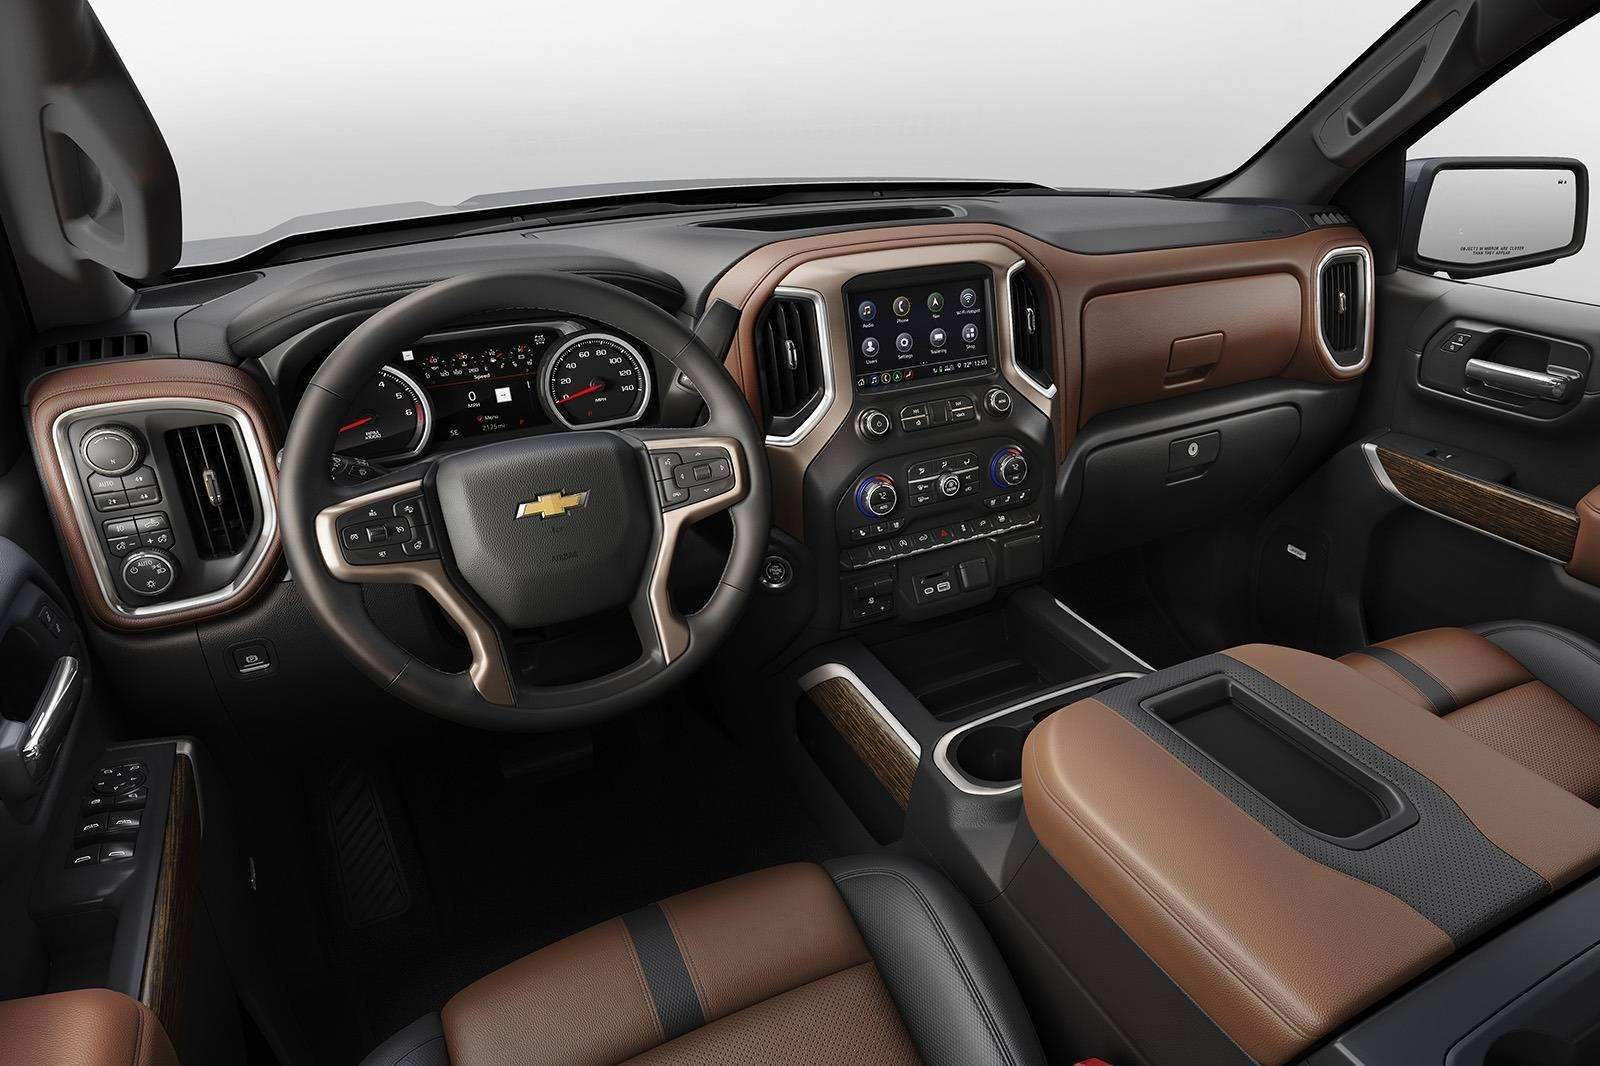 53 All New New 2019 Chevrolet Silverado Interior Specs And Review Redesign by New 2019 Chevrolet Silverado Interior Specs And Review